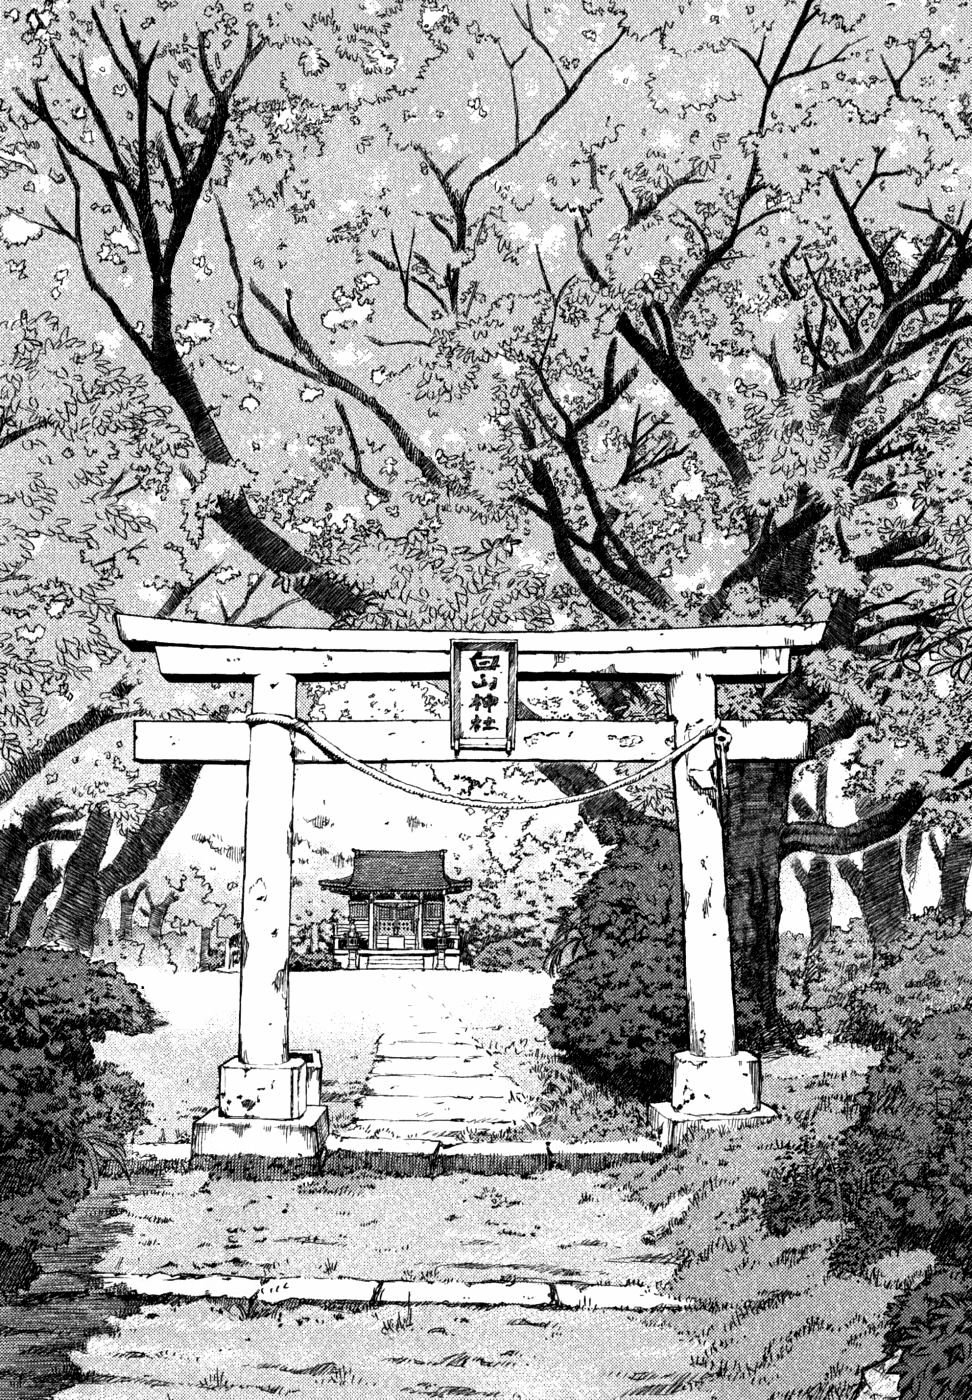 Manga Background Blooming Sakura And Torii A Traditional Japanese Gate Landscape Drawings Cityscape Drawing Urban Landscape